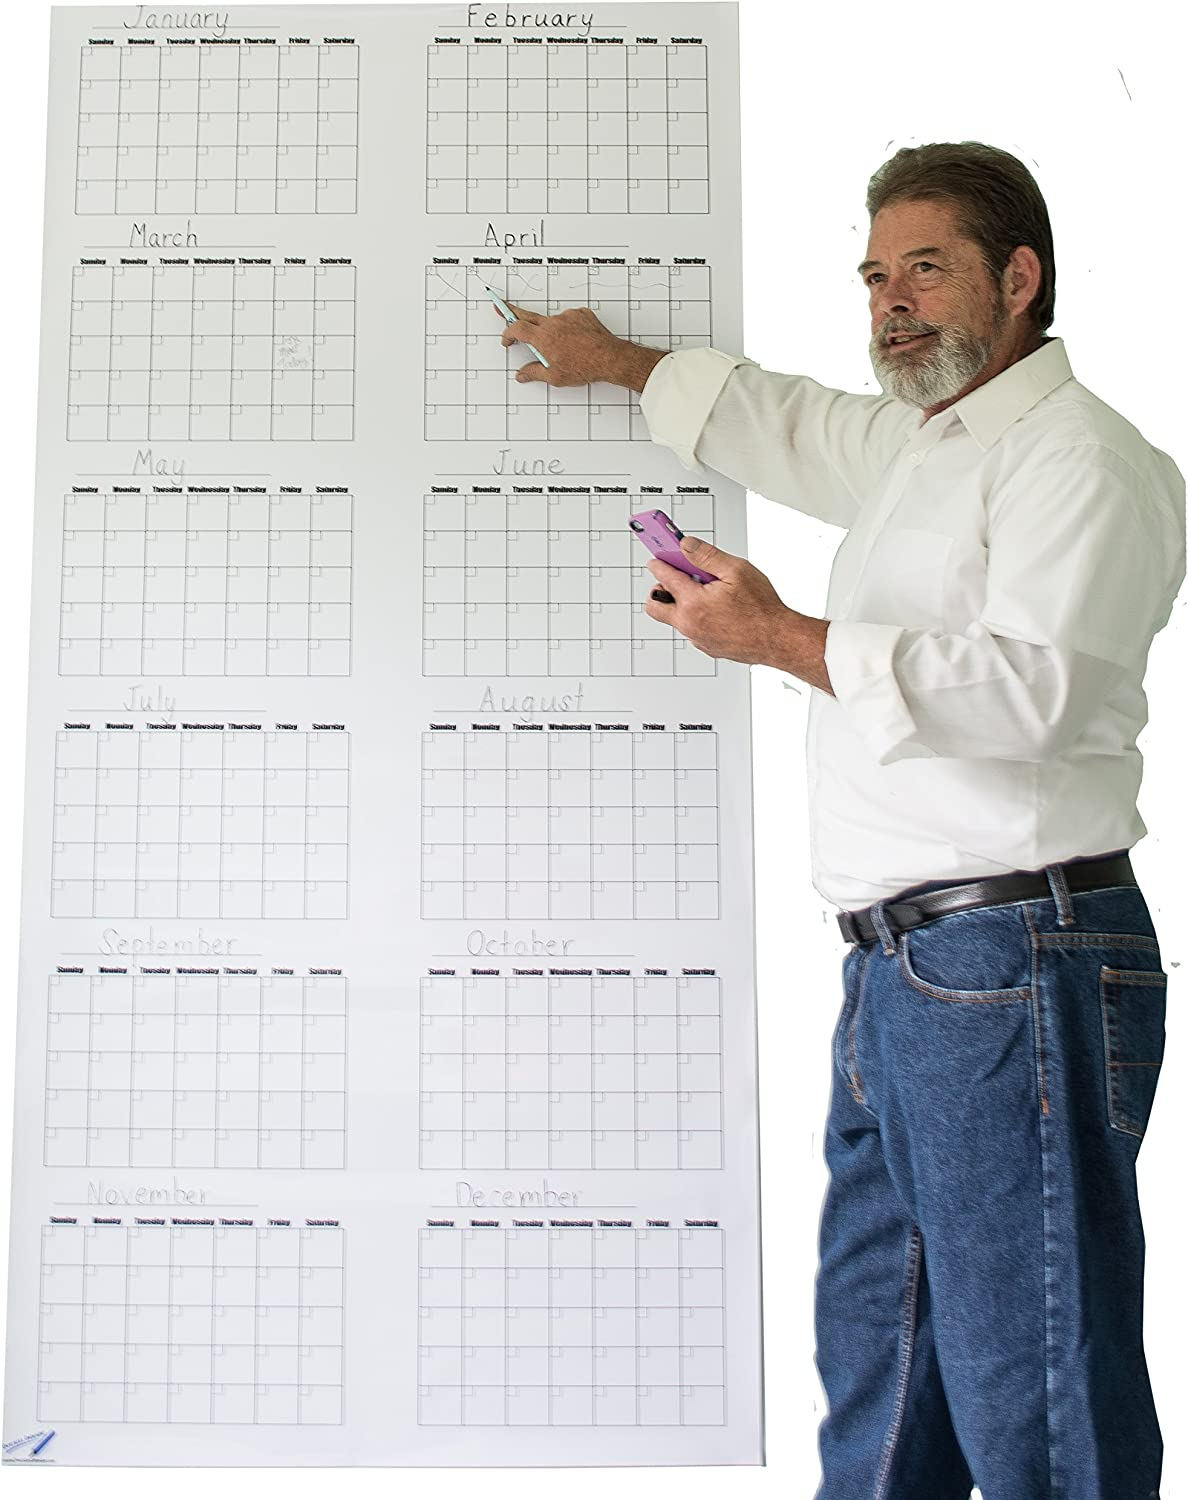 Vertical Blank Year Dry Erase Wall Calendar - 36 x 72 Inch Large Vertical Calendar Whiteboard - Vinyl White Board Calendar Poster -Command Center Office Products